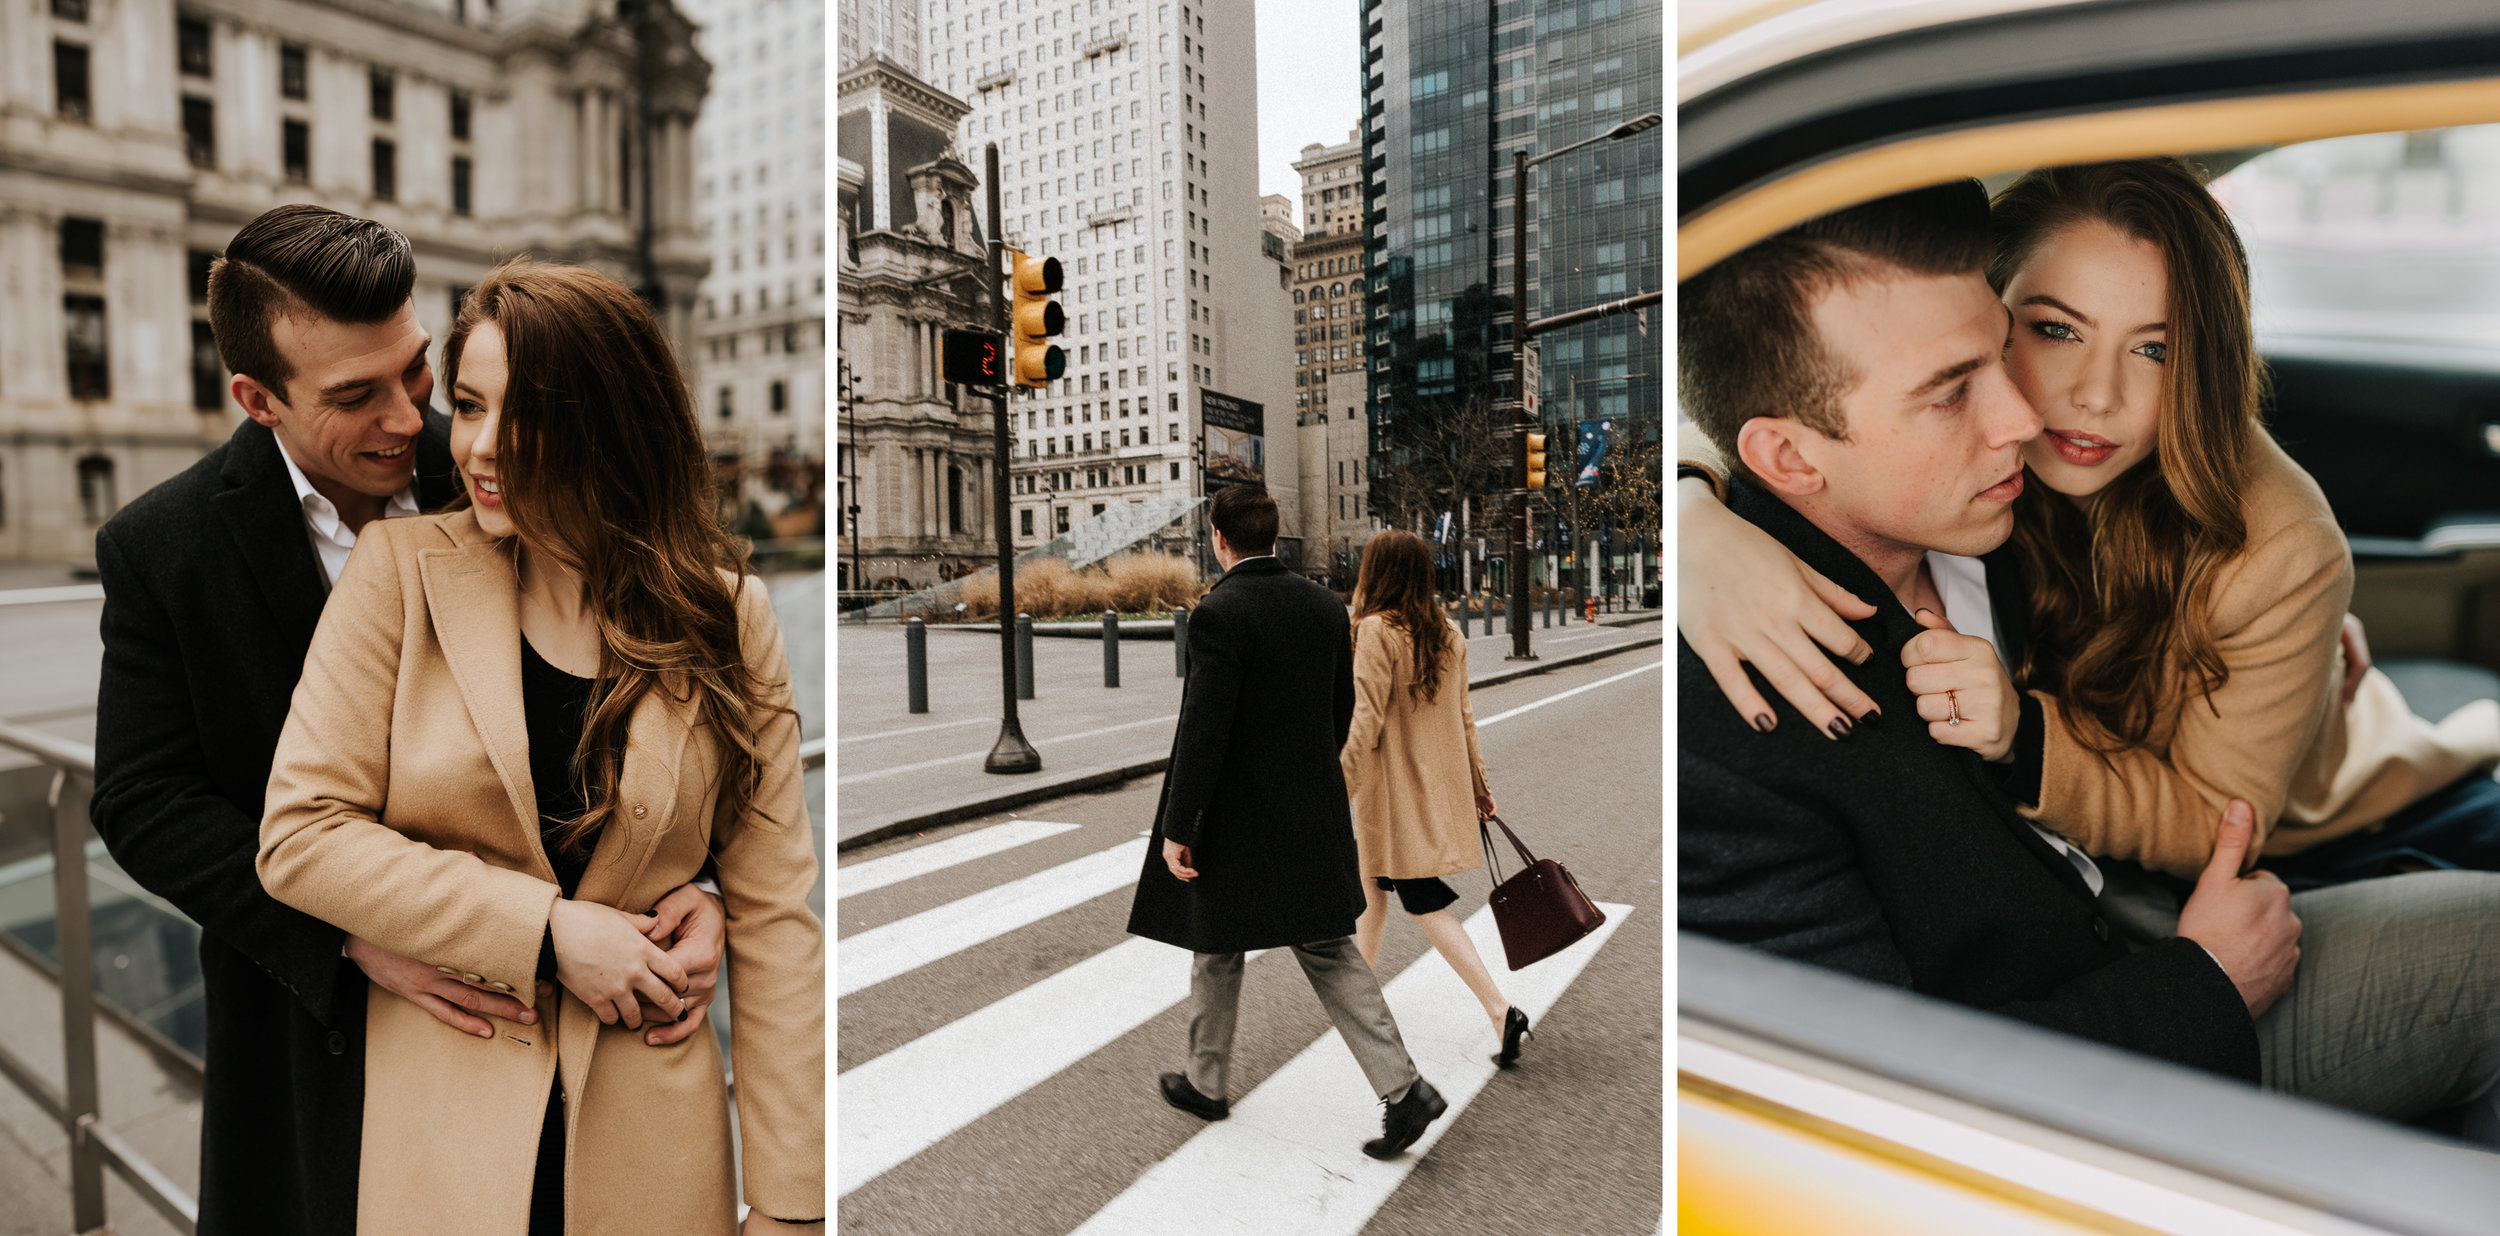 How to get married at Philadelphia's City Hall